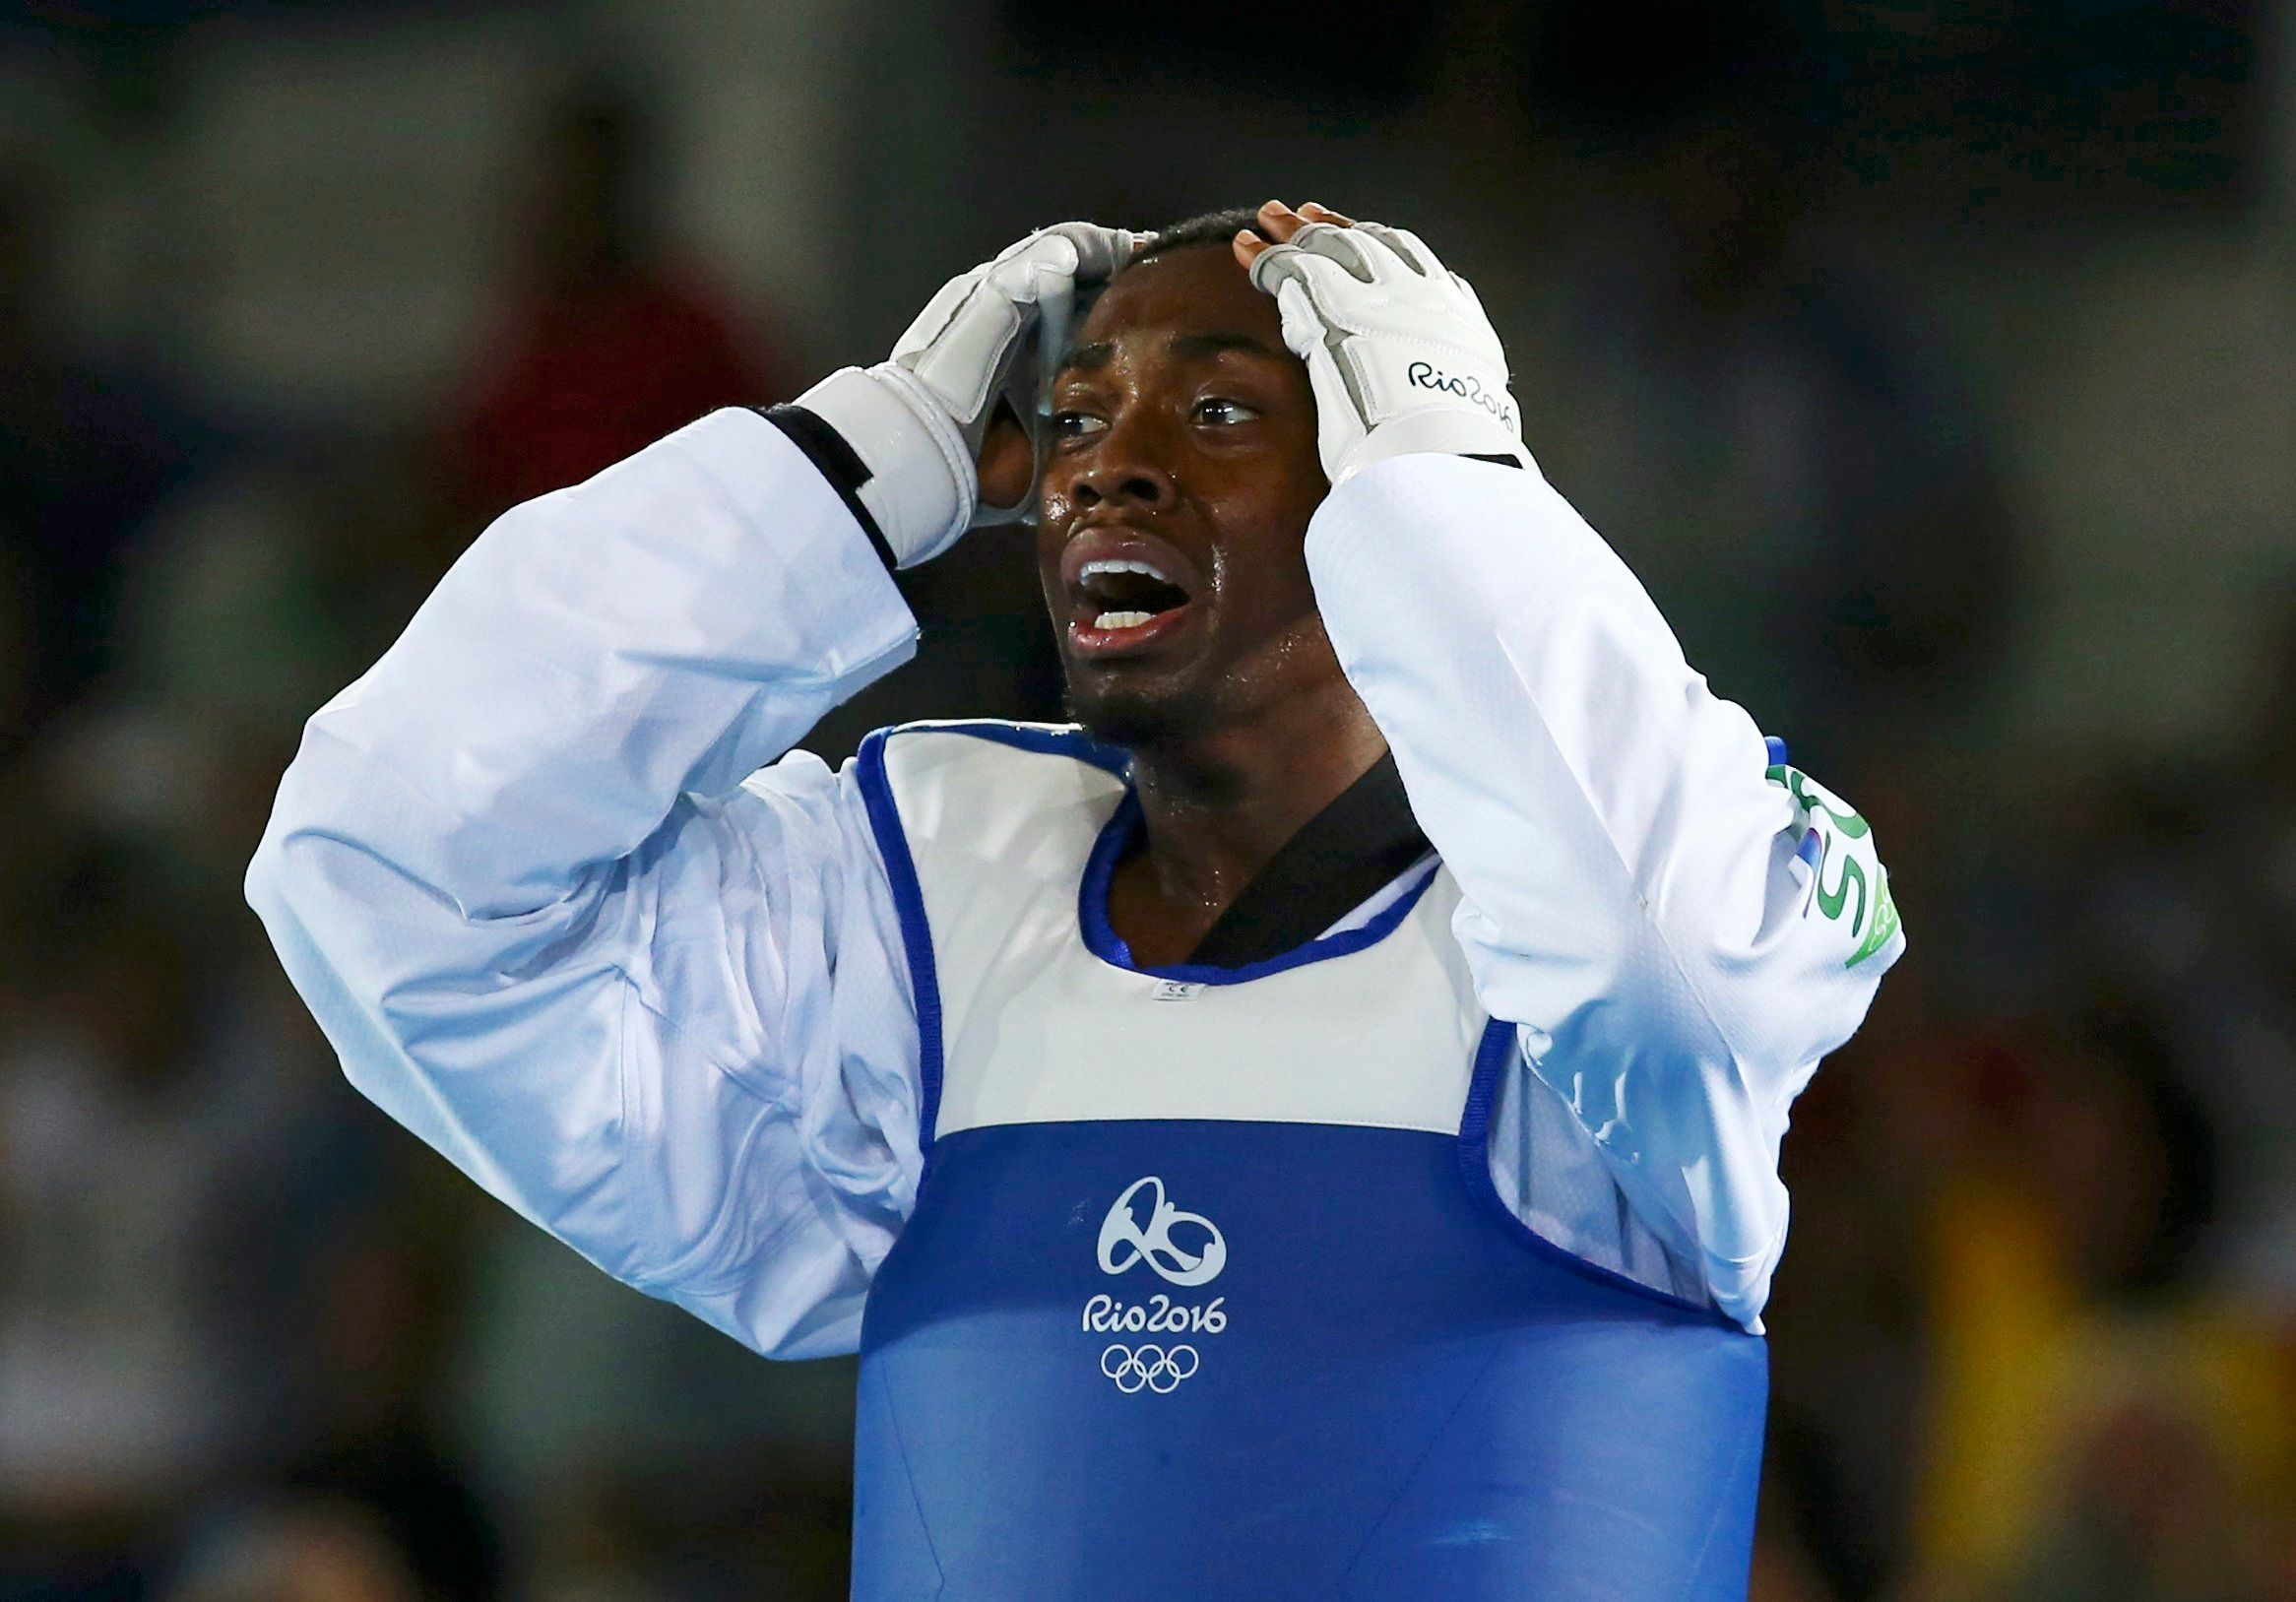 Lutalo Muhammad Apologises For Missing Out On Gold. Fans Are Having None If